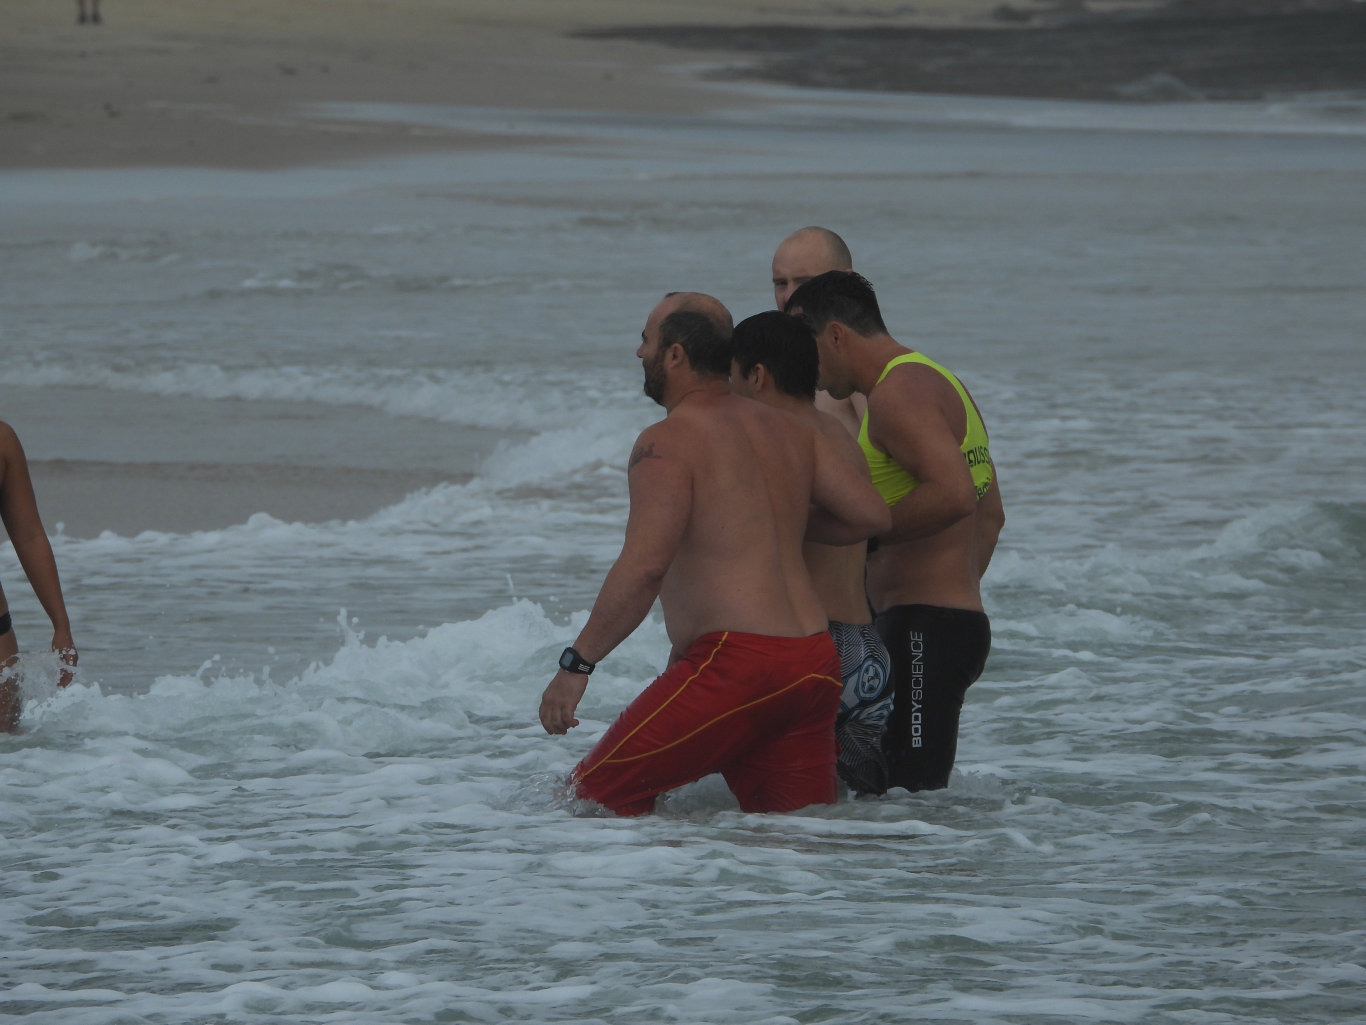 The tourist is helped to the shore at Mooloolaba before the start of patrols on Saturday morning.